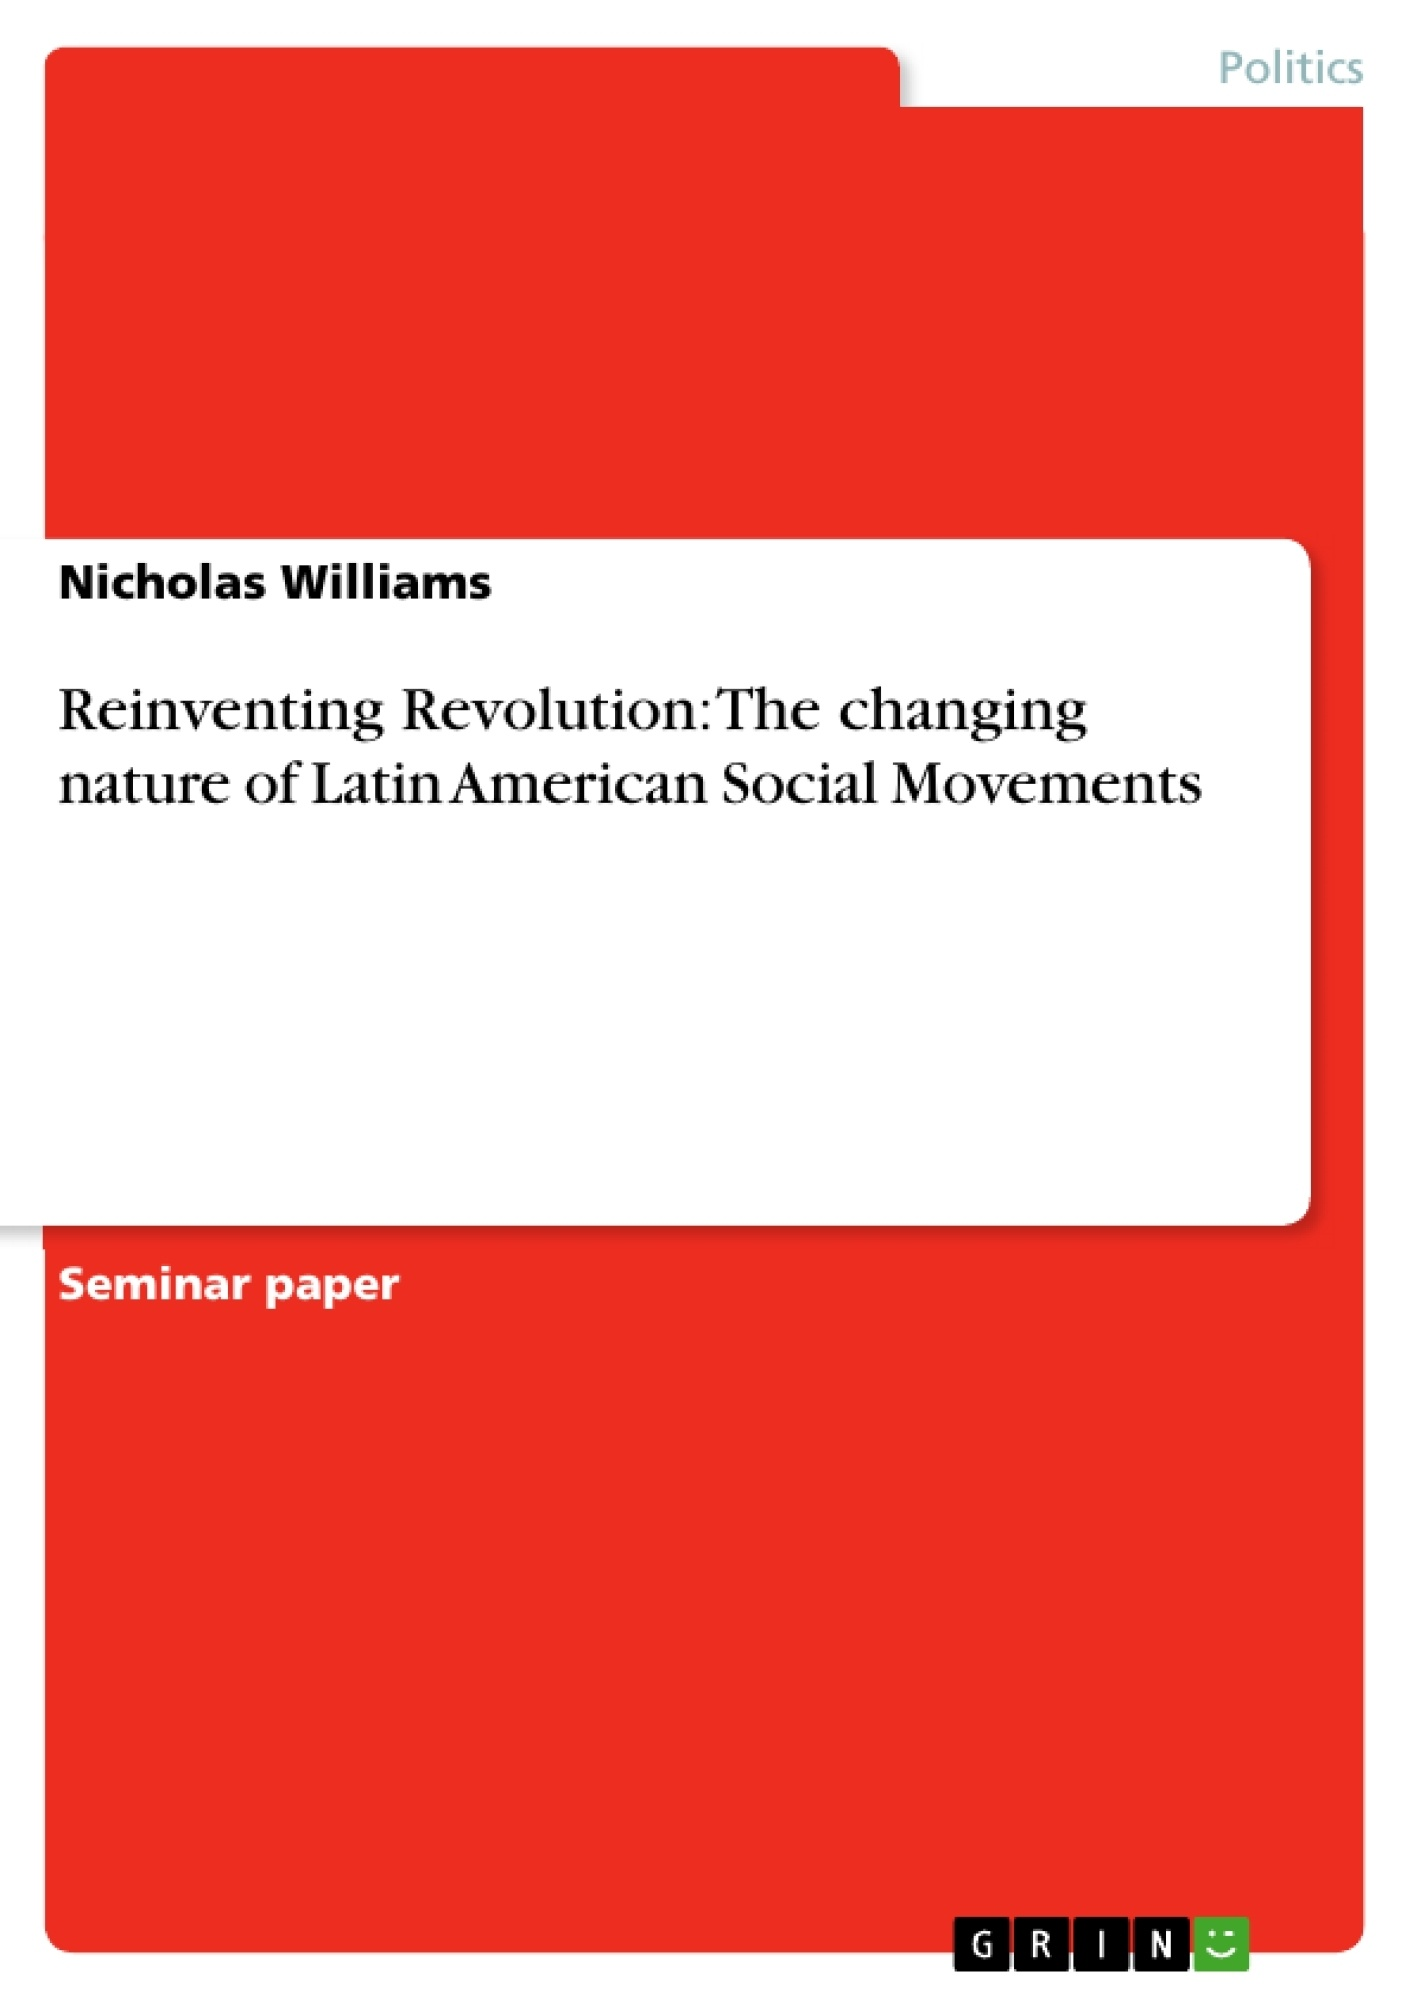 Title: Reinventing Revolution: The changing nature of Latin American Social Movements